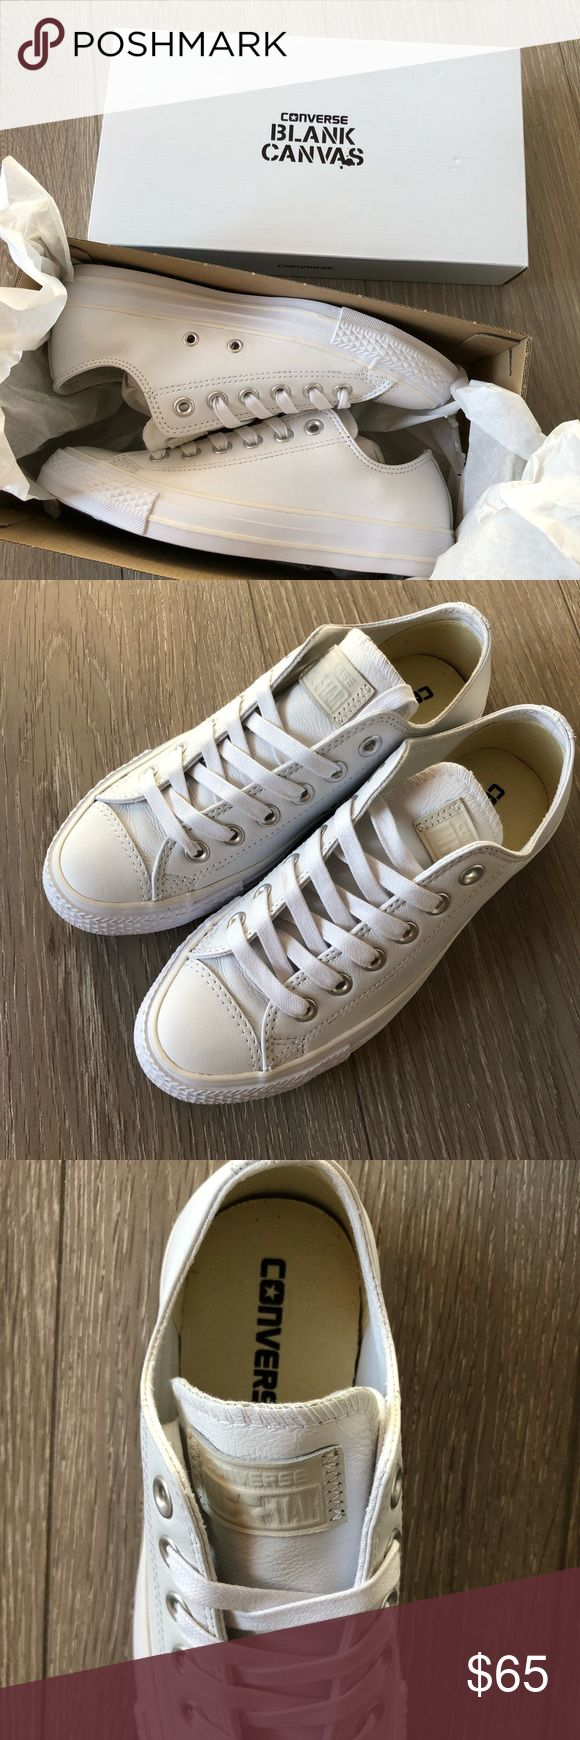 NEW! Converse Chuck Taylor Leather Low Top Shoe NEW! Converse Custom Chuck Taylor Premium Leather Low Top Shoe.  Never worn still in the box. Converse Shoes Athletic Shoes